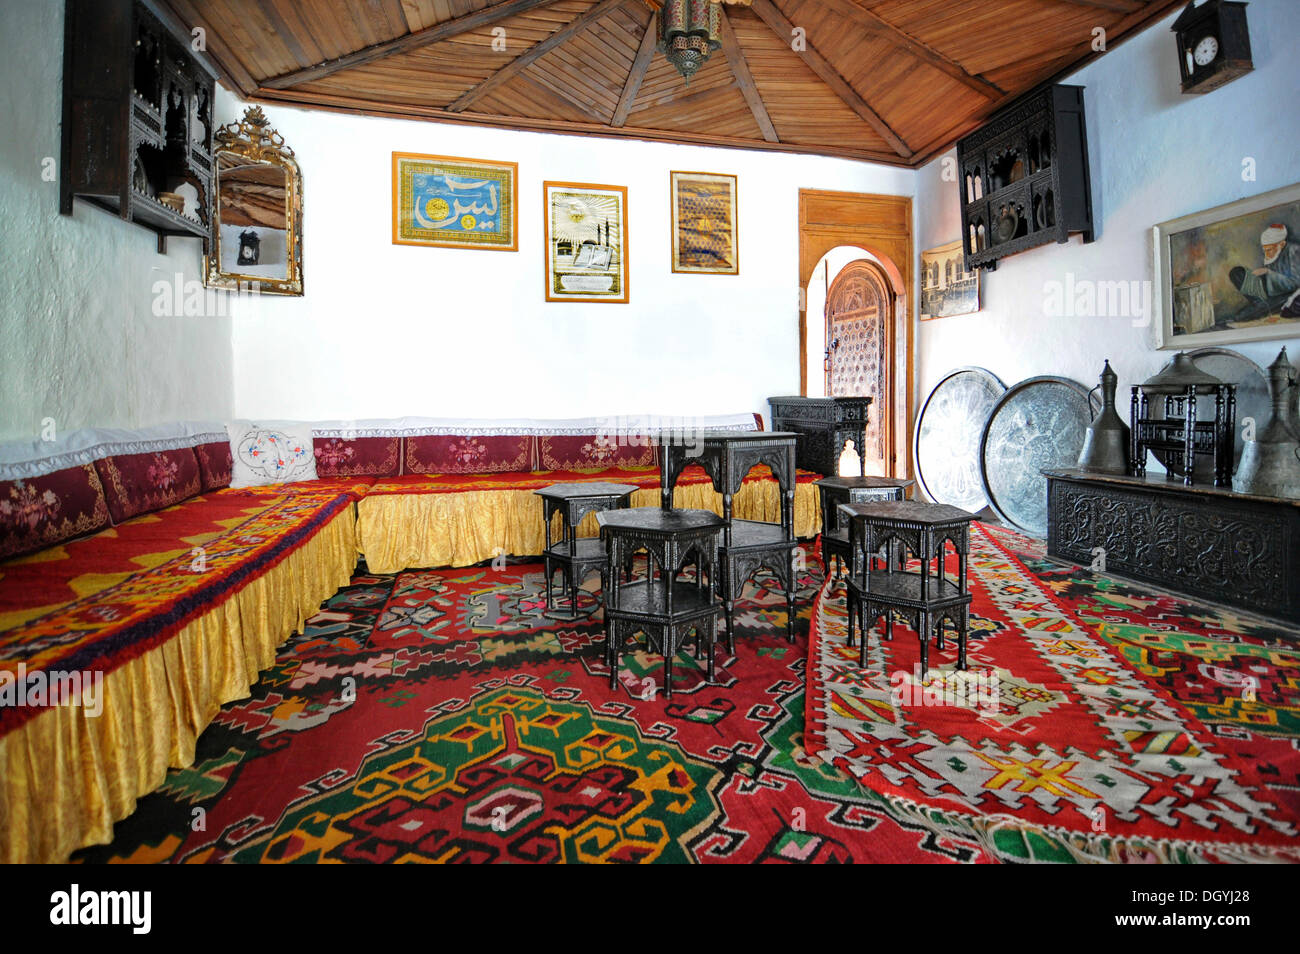 Turkish house mostar photos turkish house mostar images for Maison traditionnelle turque